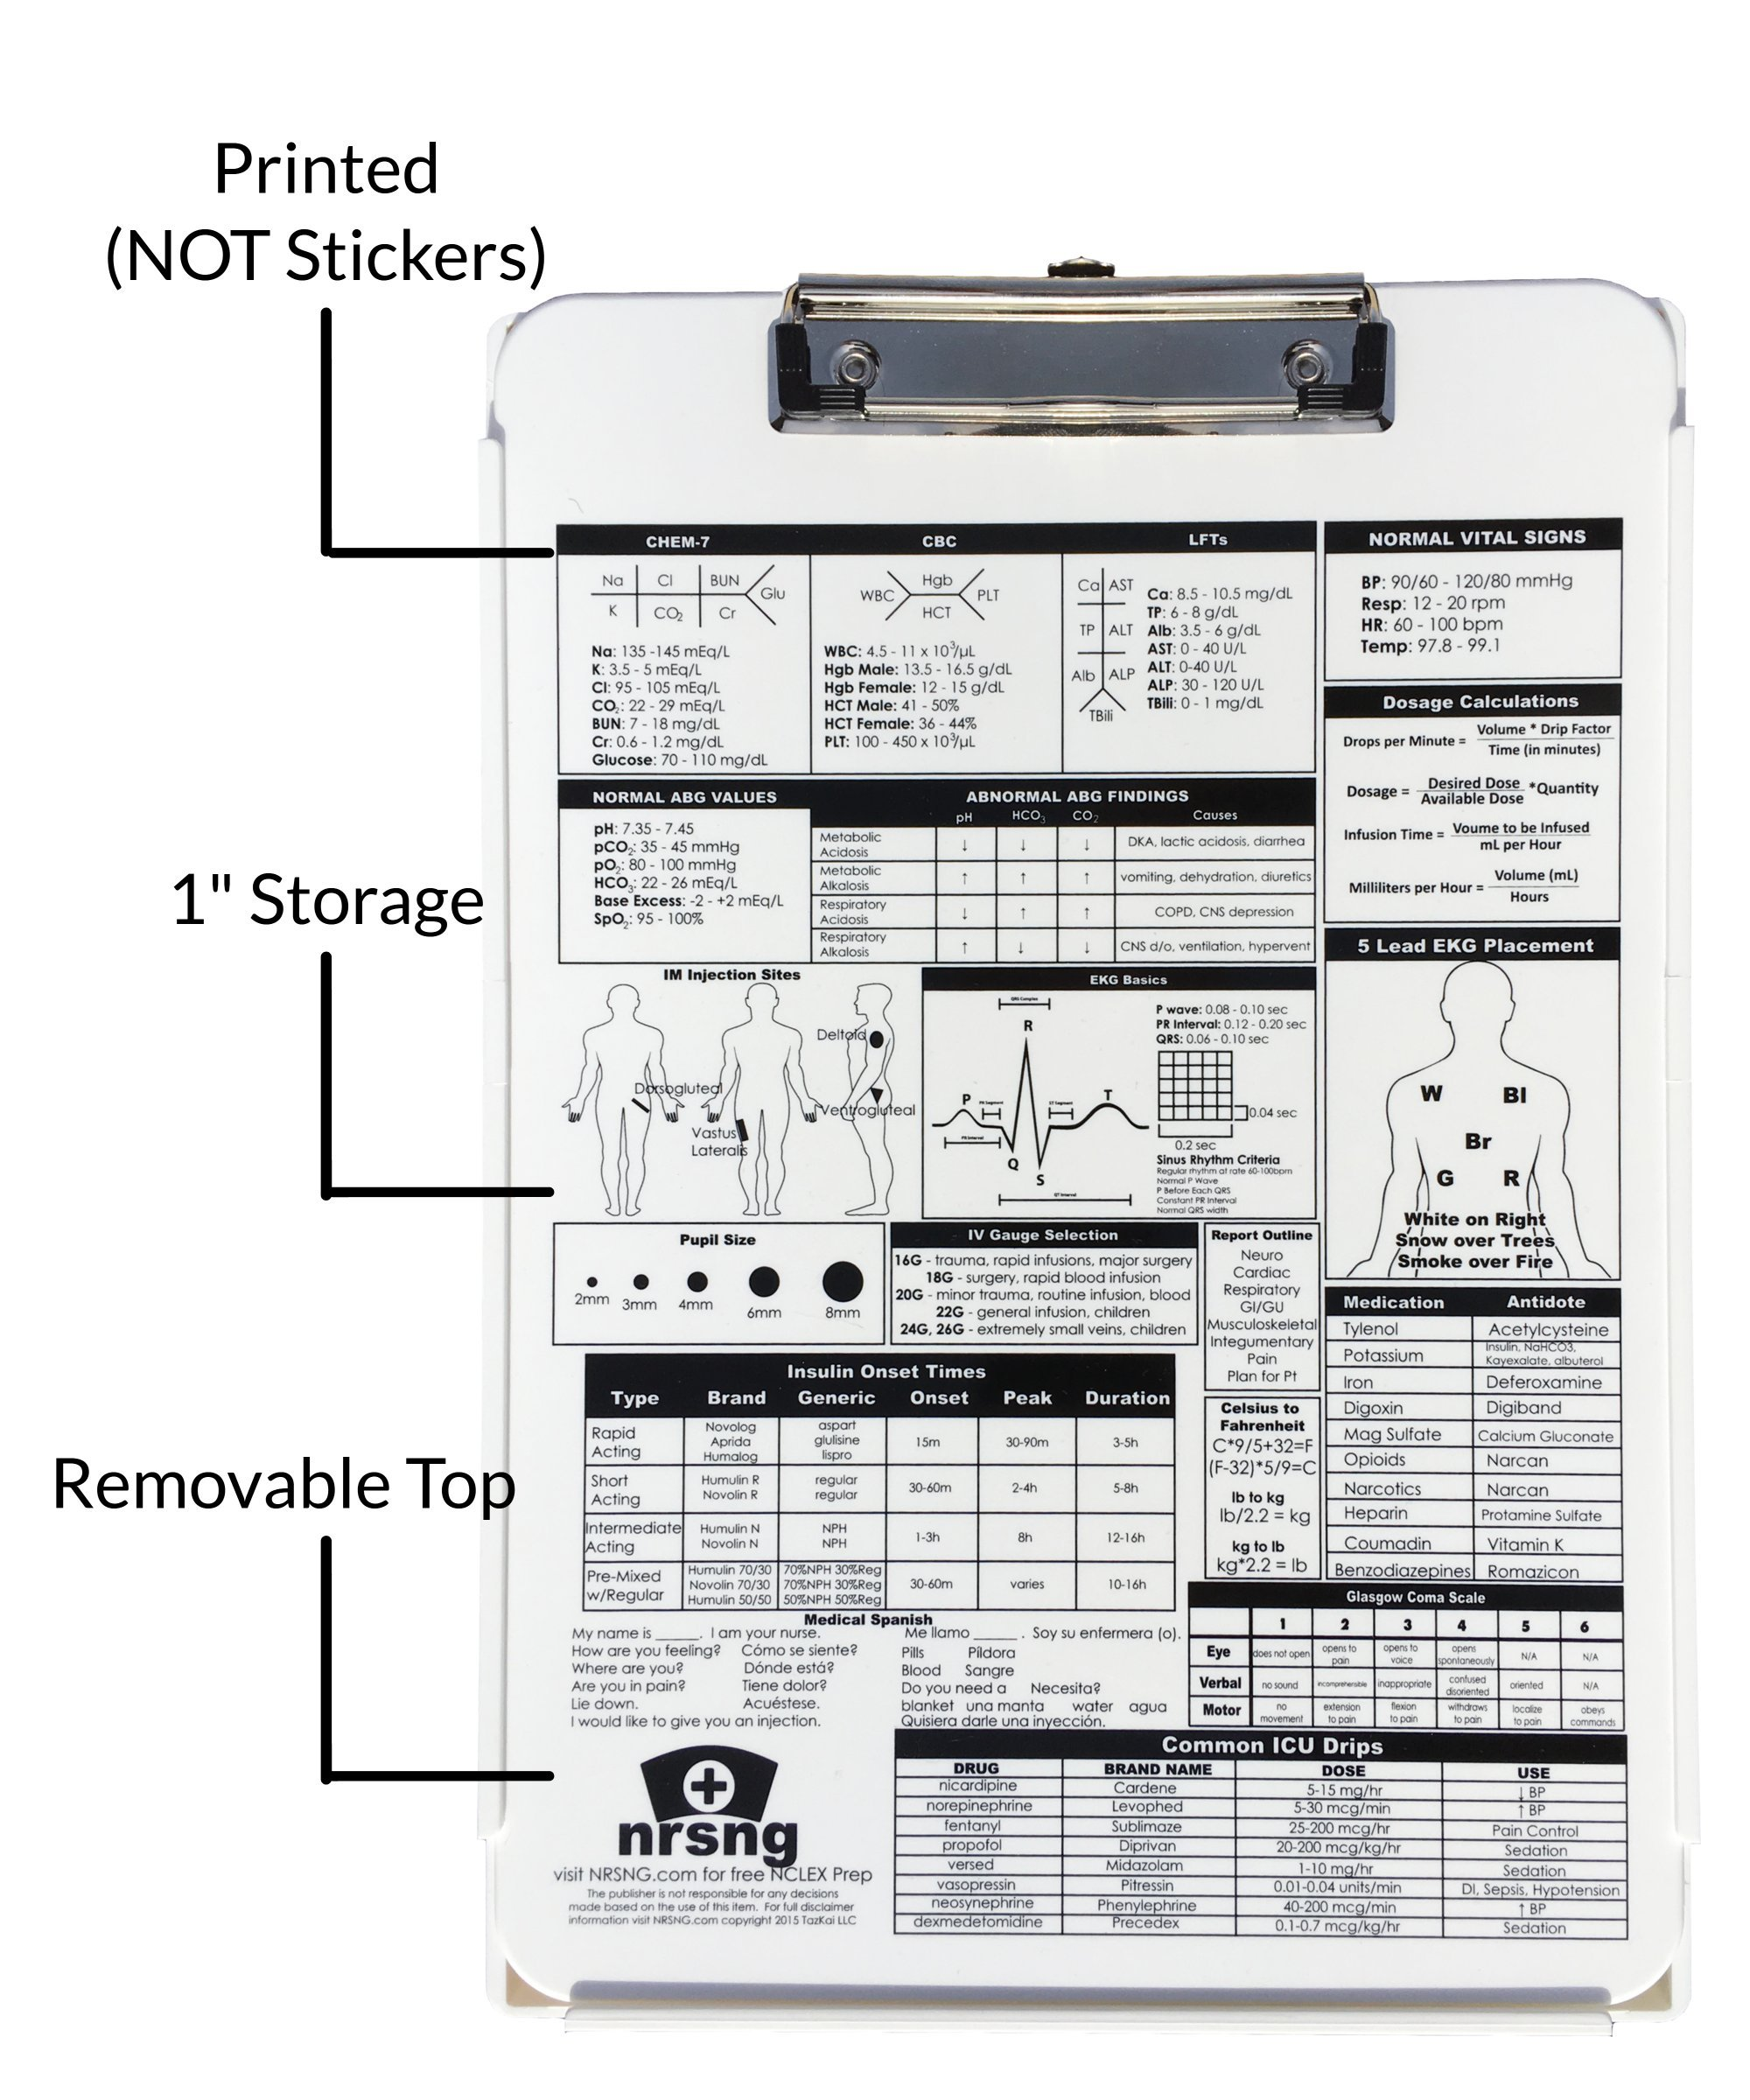 DISCOUNT Nursing Clipboard with Storage and Printed Reference: White Durable Medical Clipboard (Includes 2 Freebies: Nursing Brain Sheet and Physical Assessment Sheet)